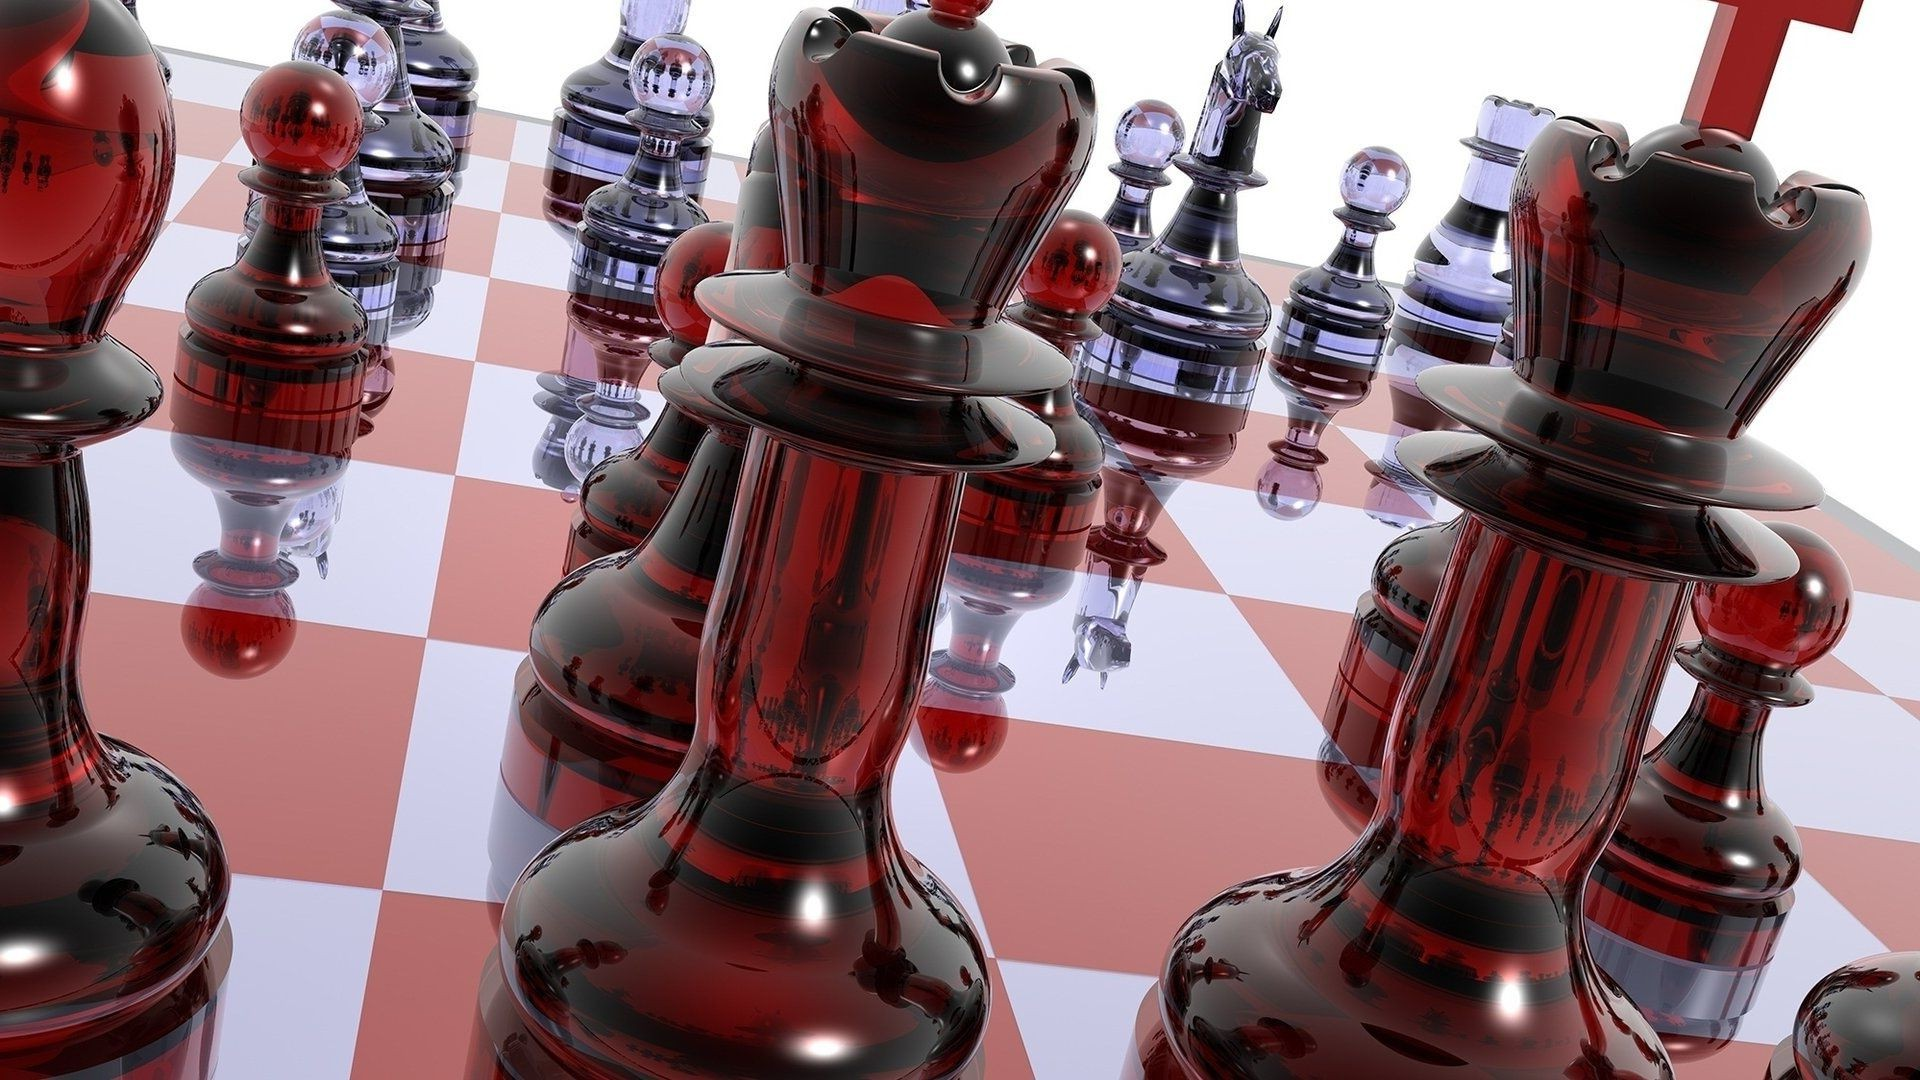 Bright Colors Chess Strategy Knight Victory Competition Win Pawn Leisure Game Queen Play Intelligence Decision Mate